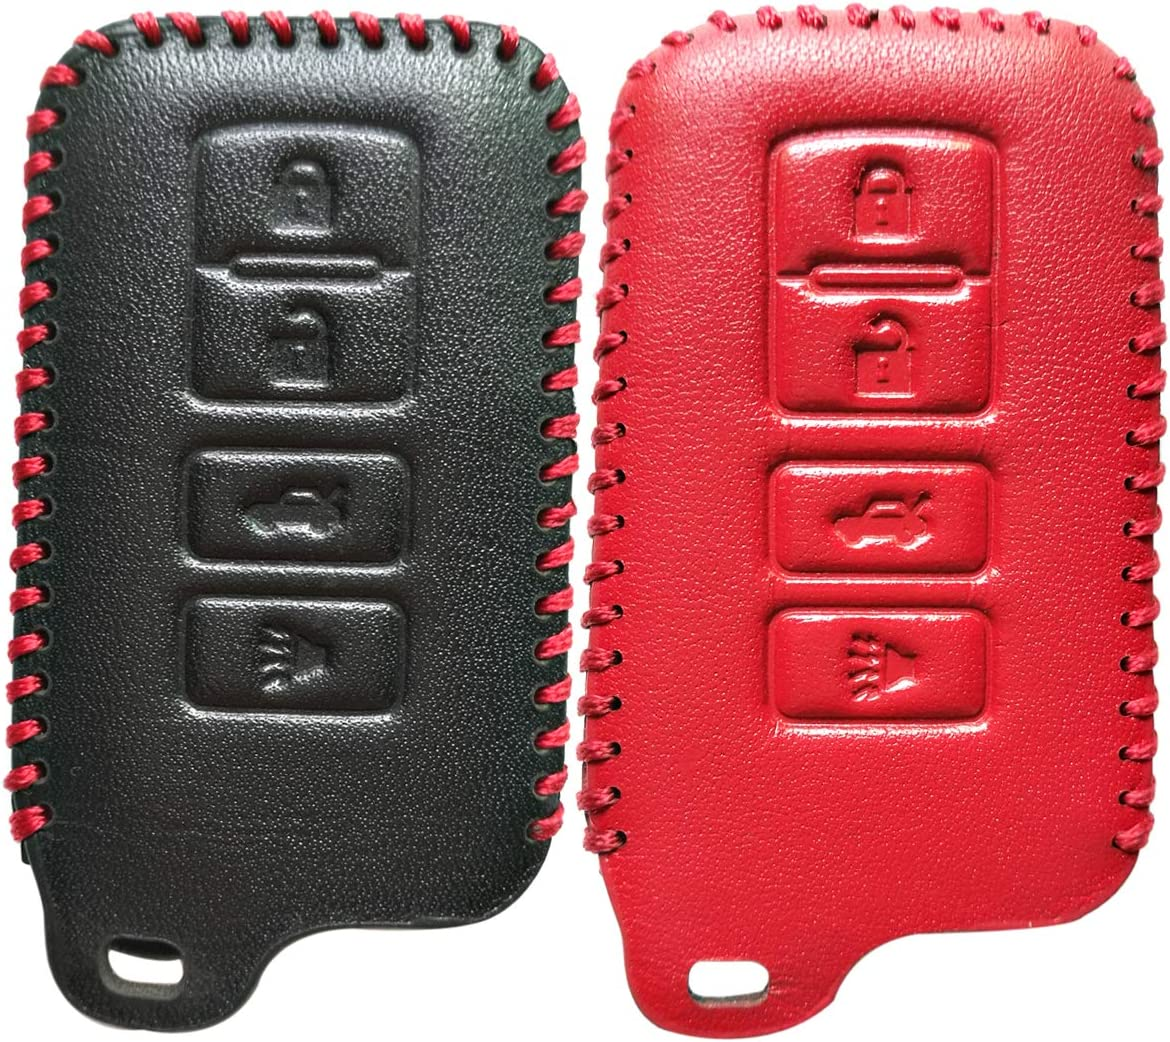 2Pcs Coolbestda 4Buttons Key Under blast sales Fob Glove Cover Remote Accessories National products